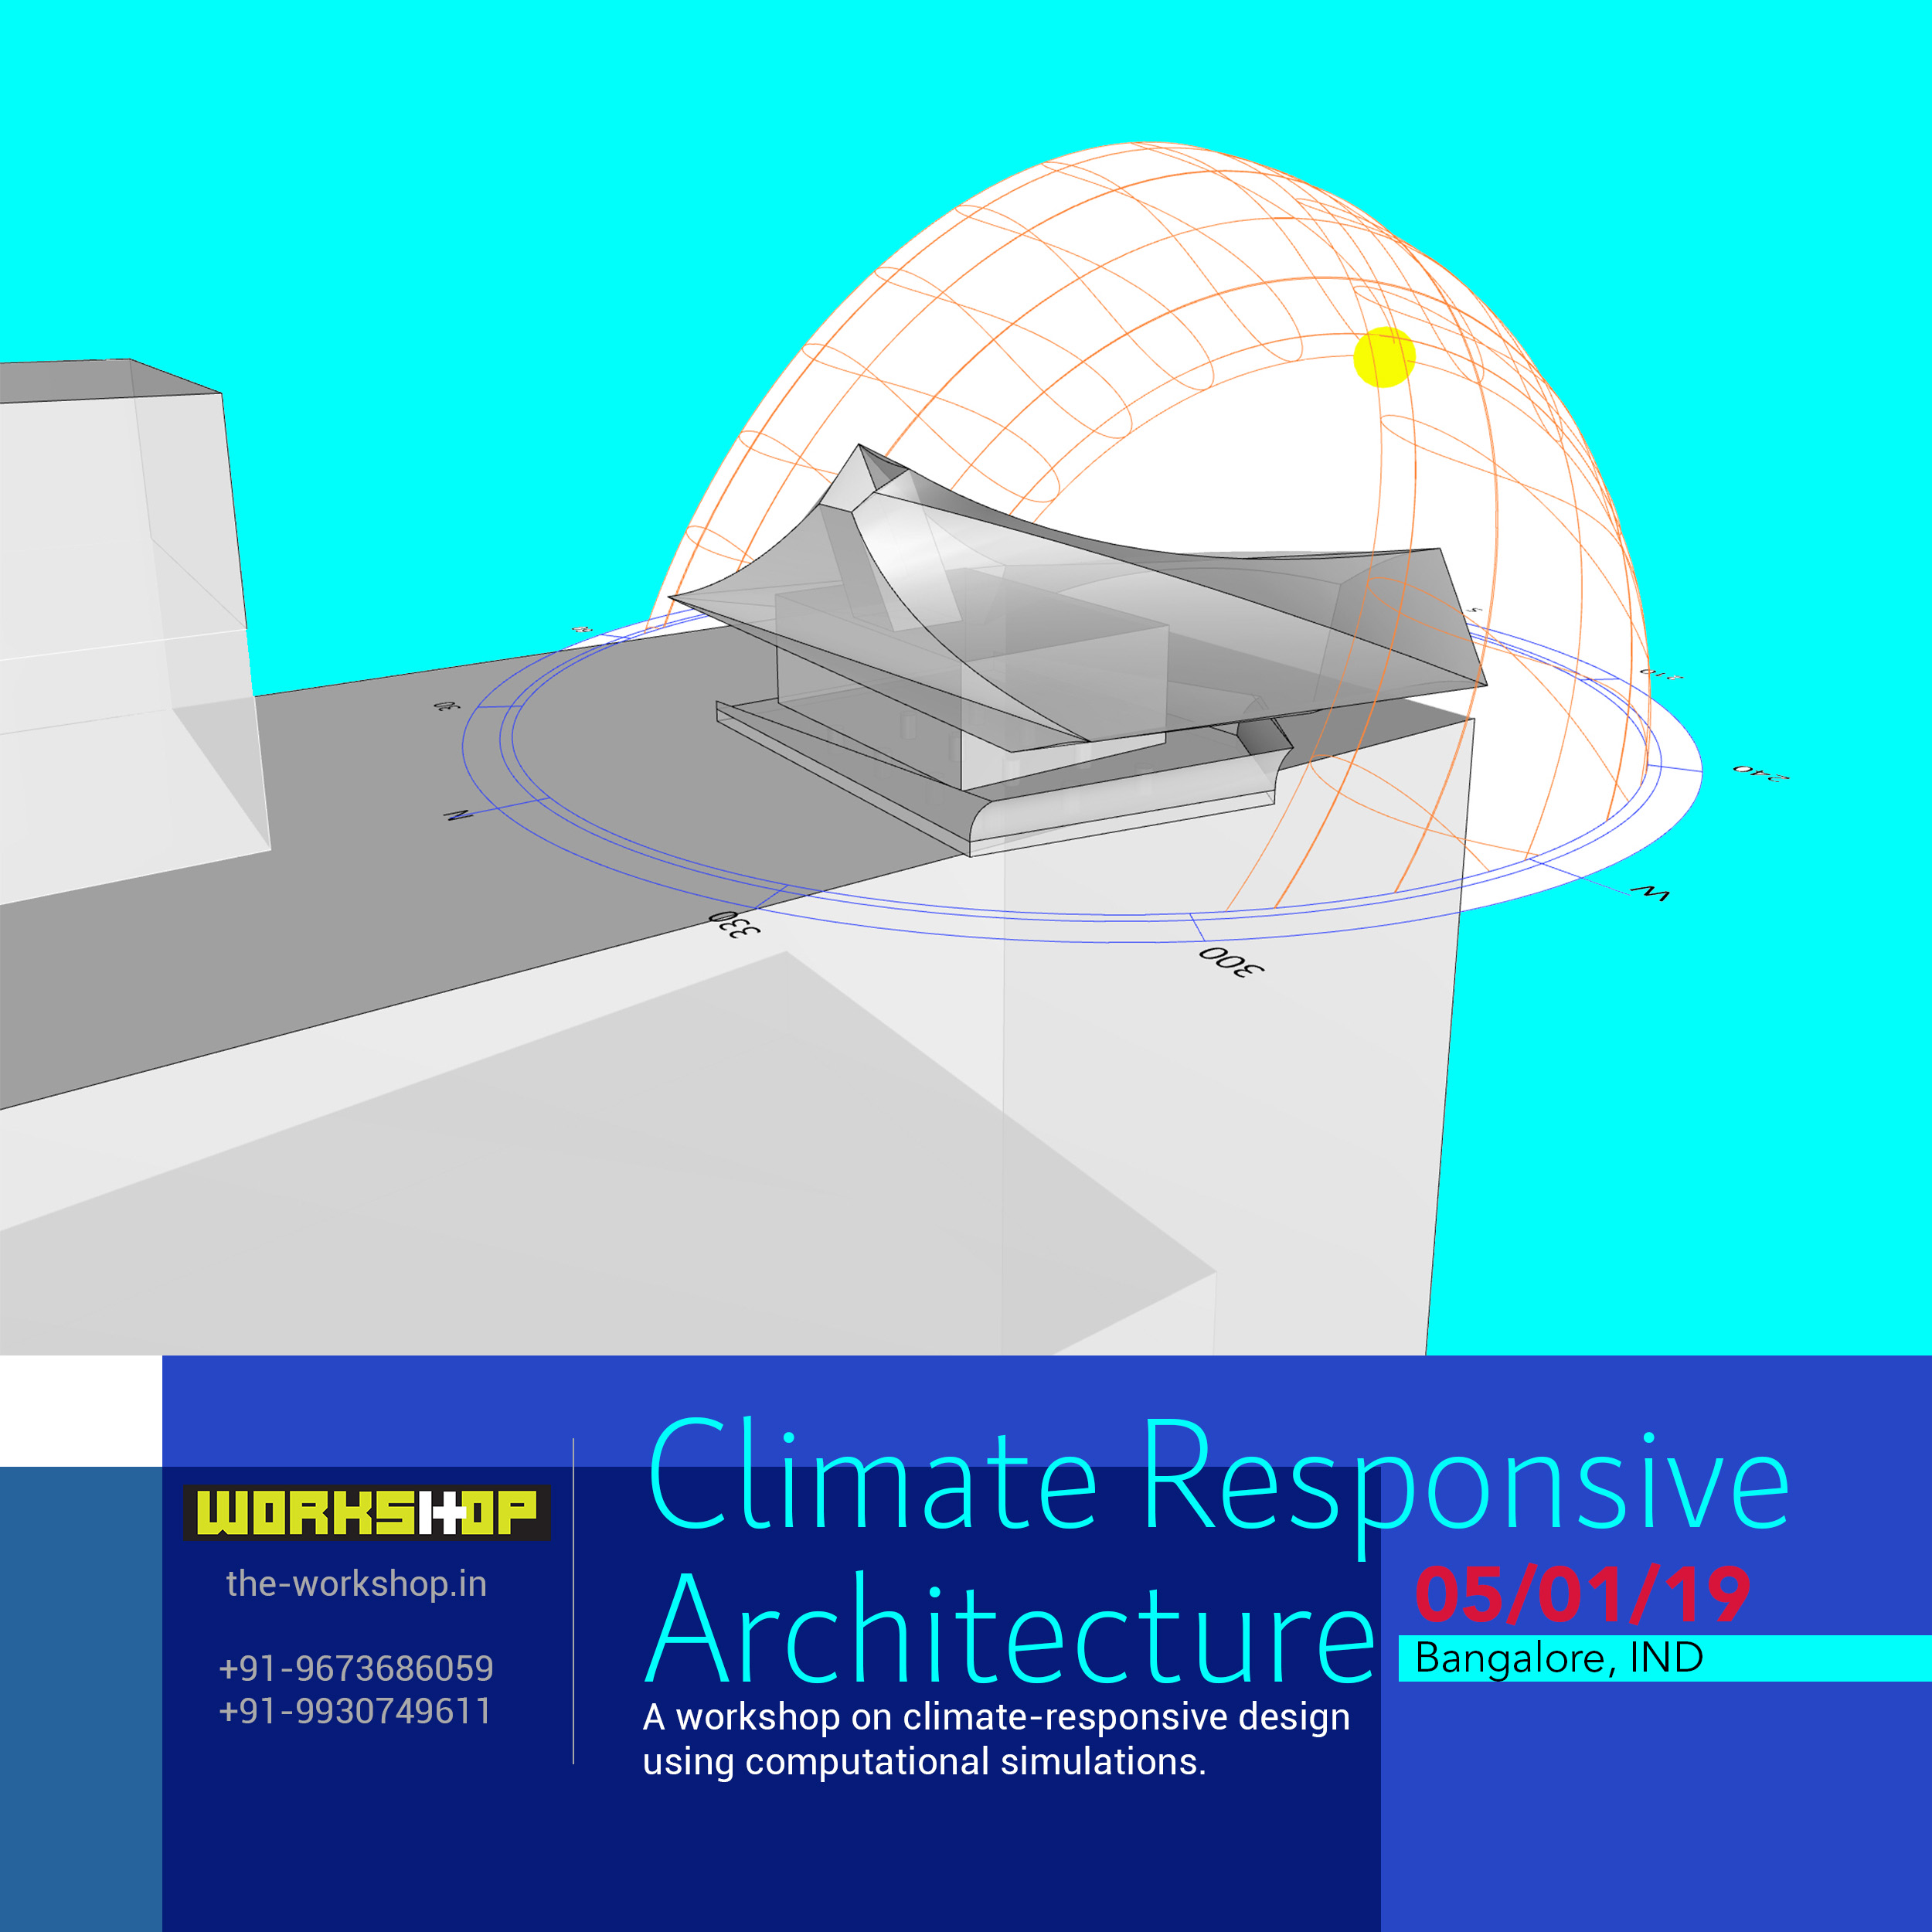 THE-Workshop_Climadesign_jan2019_fb post